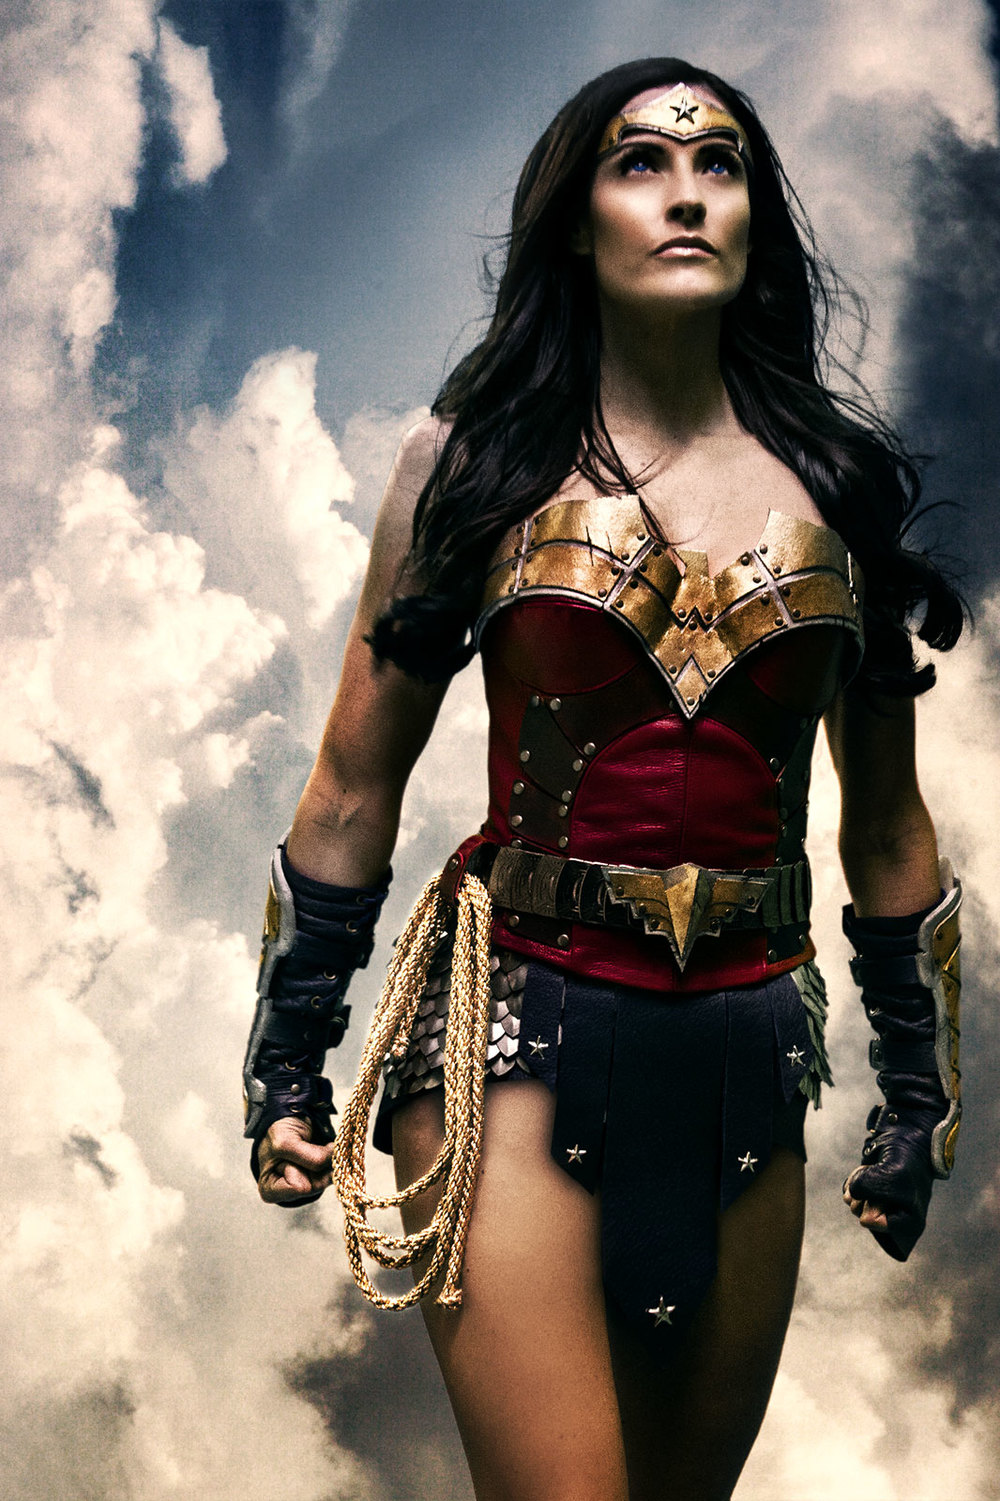 Rileah Vanderbilt is Wonder Woman — Photo by Rainfall Films